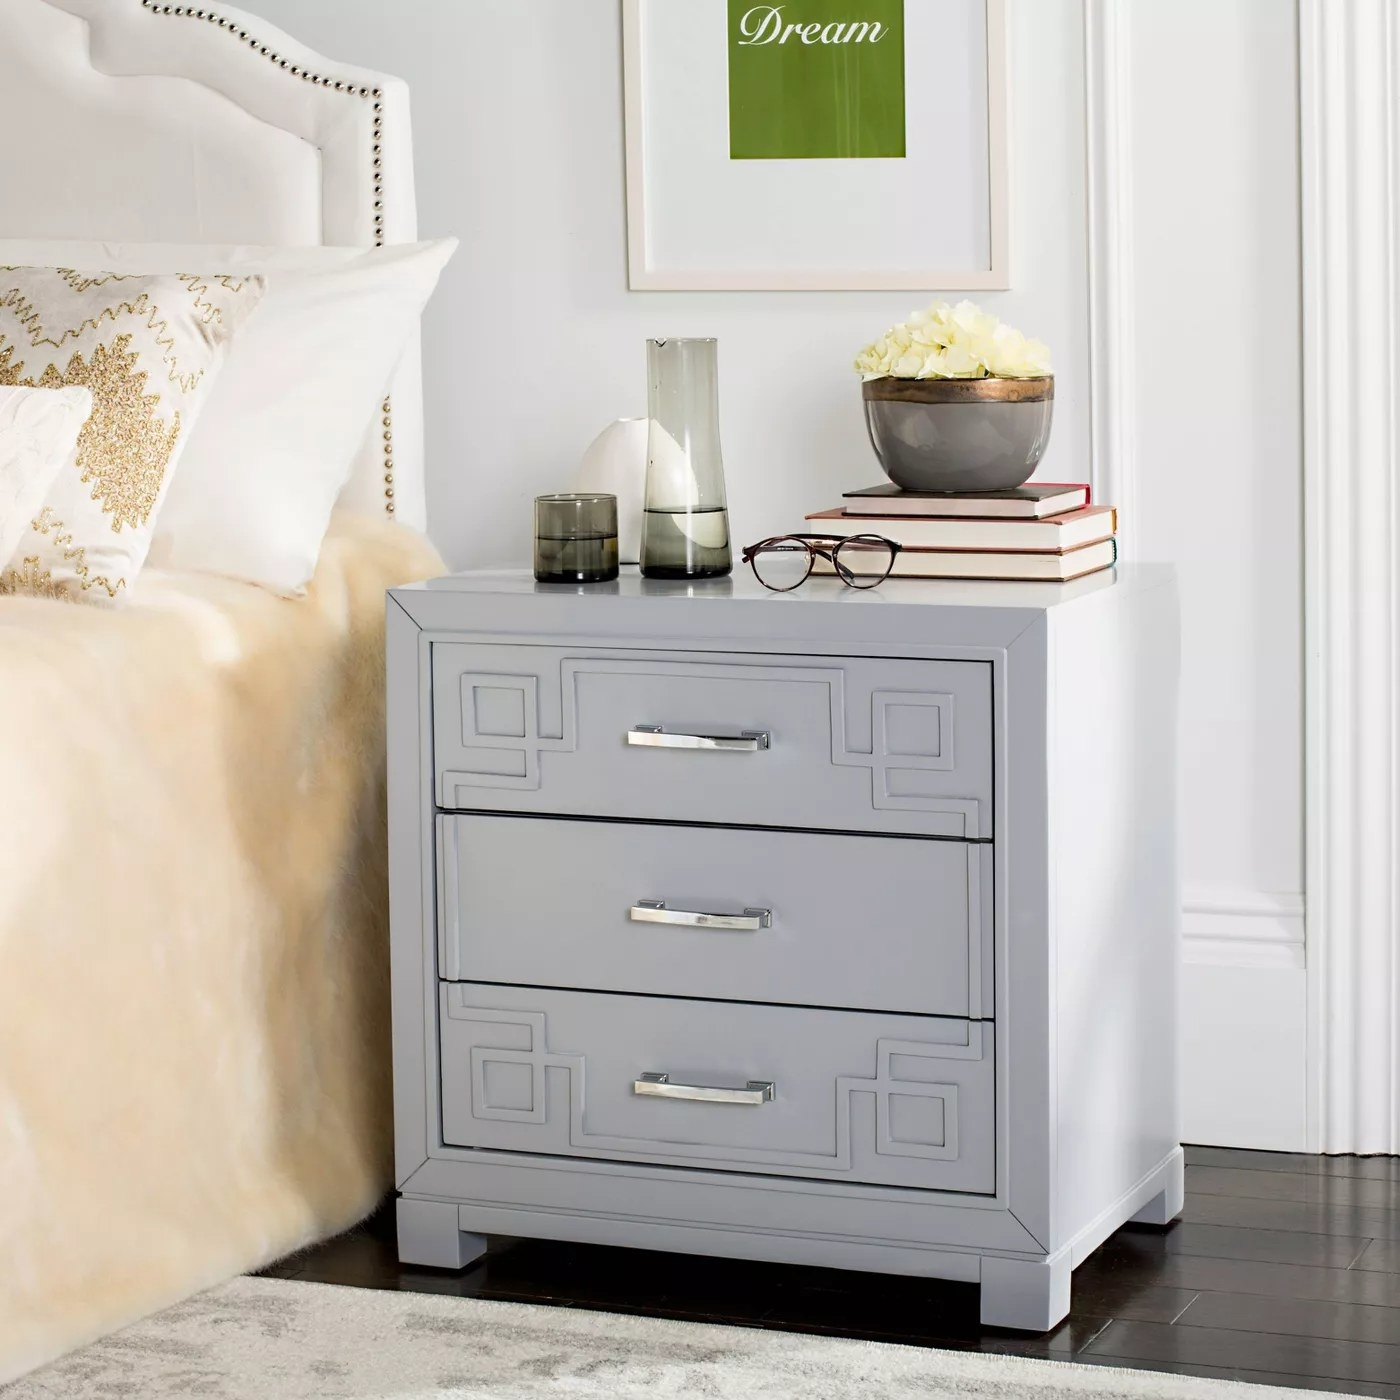 A gray side table with three drawers, silver handles, and a Greek key pattern